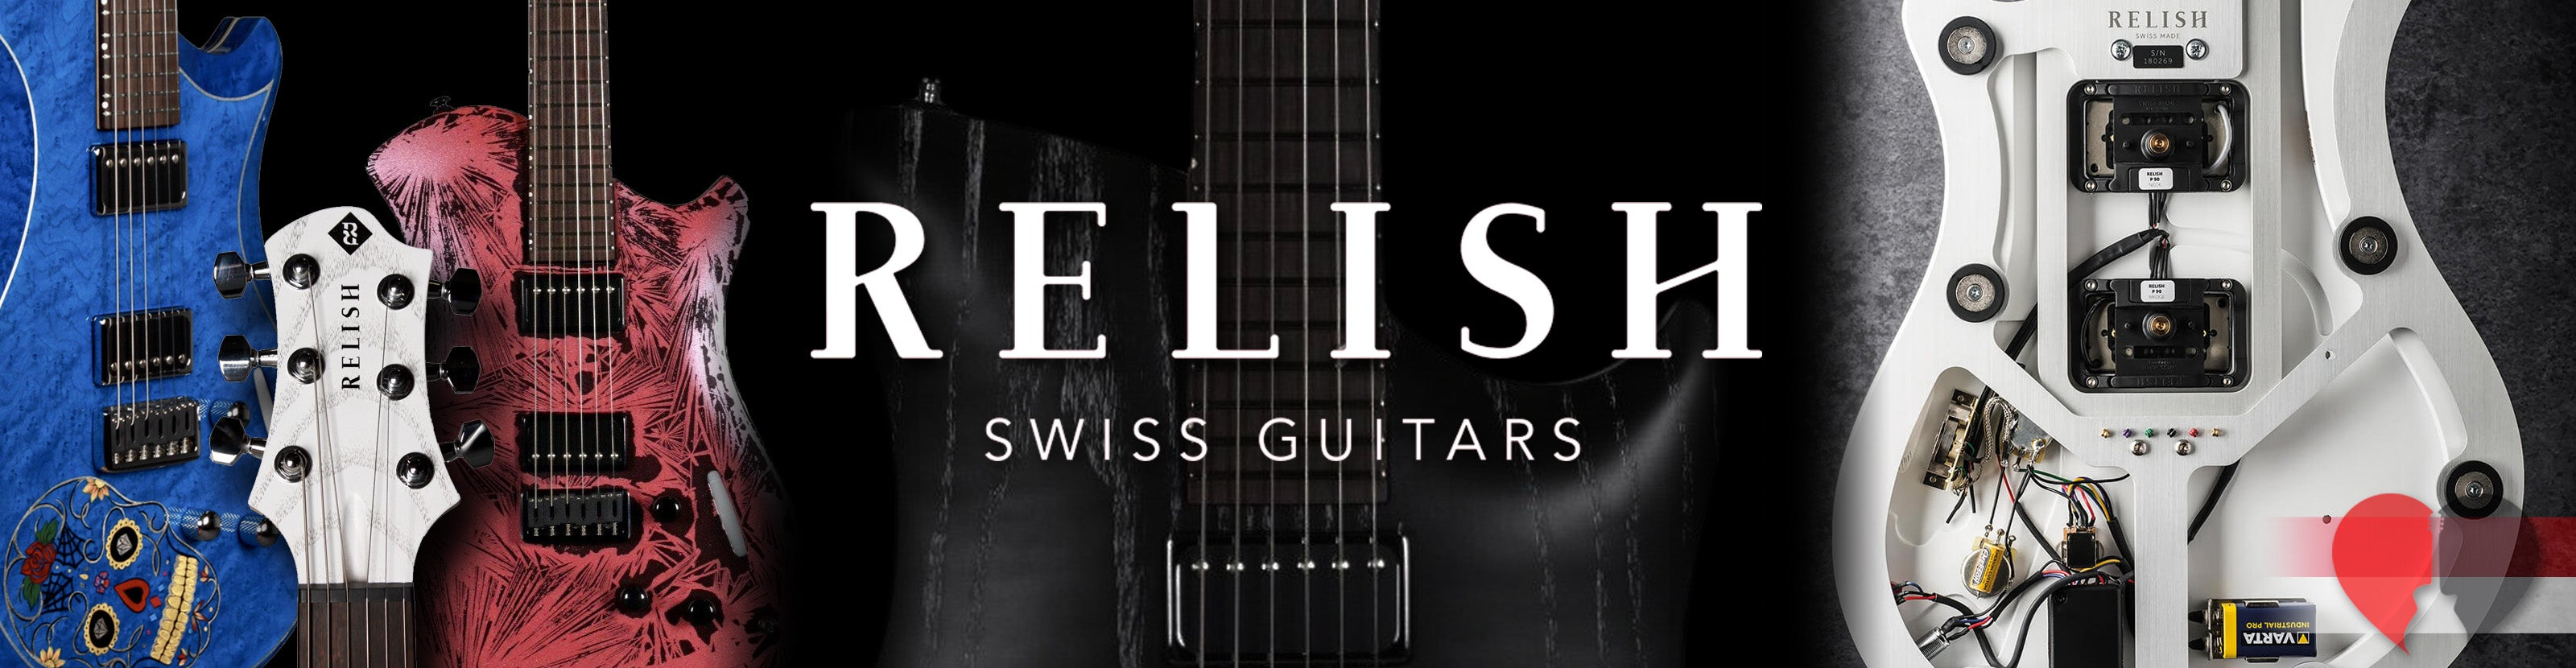 Relish Guitars